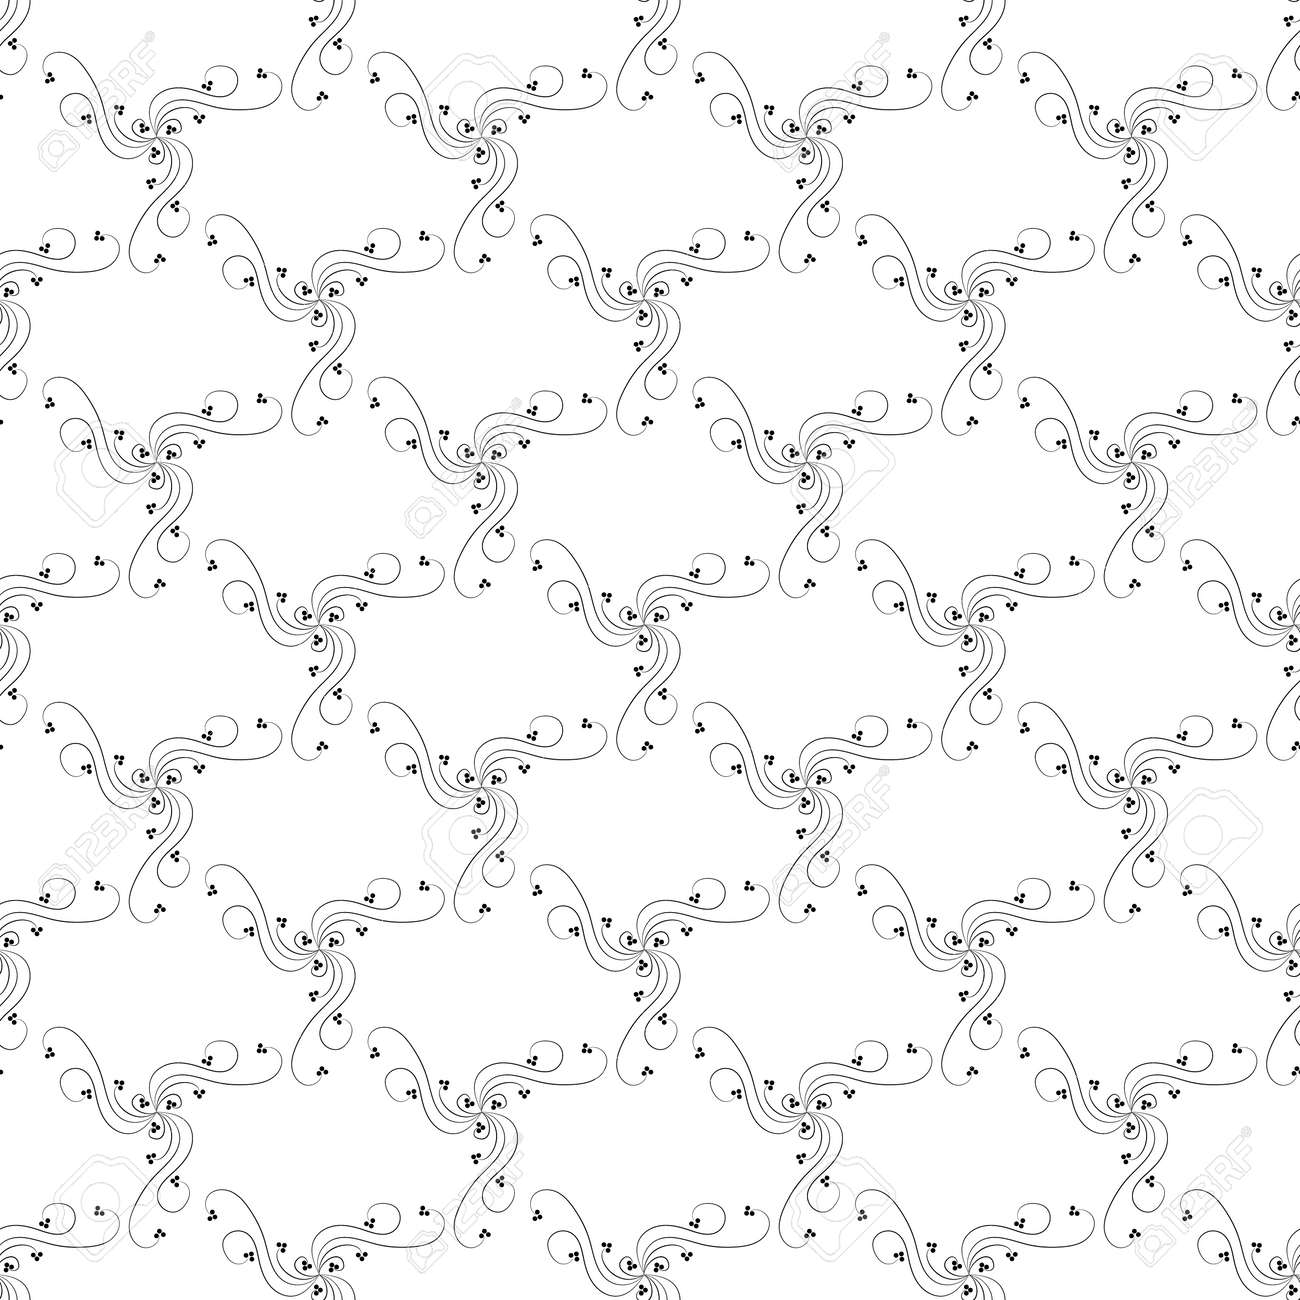 Abstract pattern for print, textiles etc. Vector - 160002167